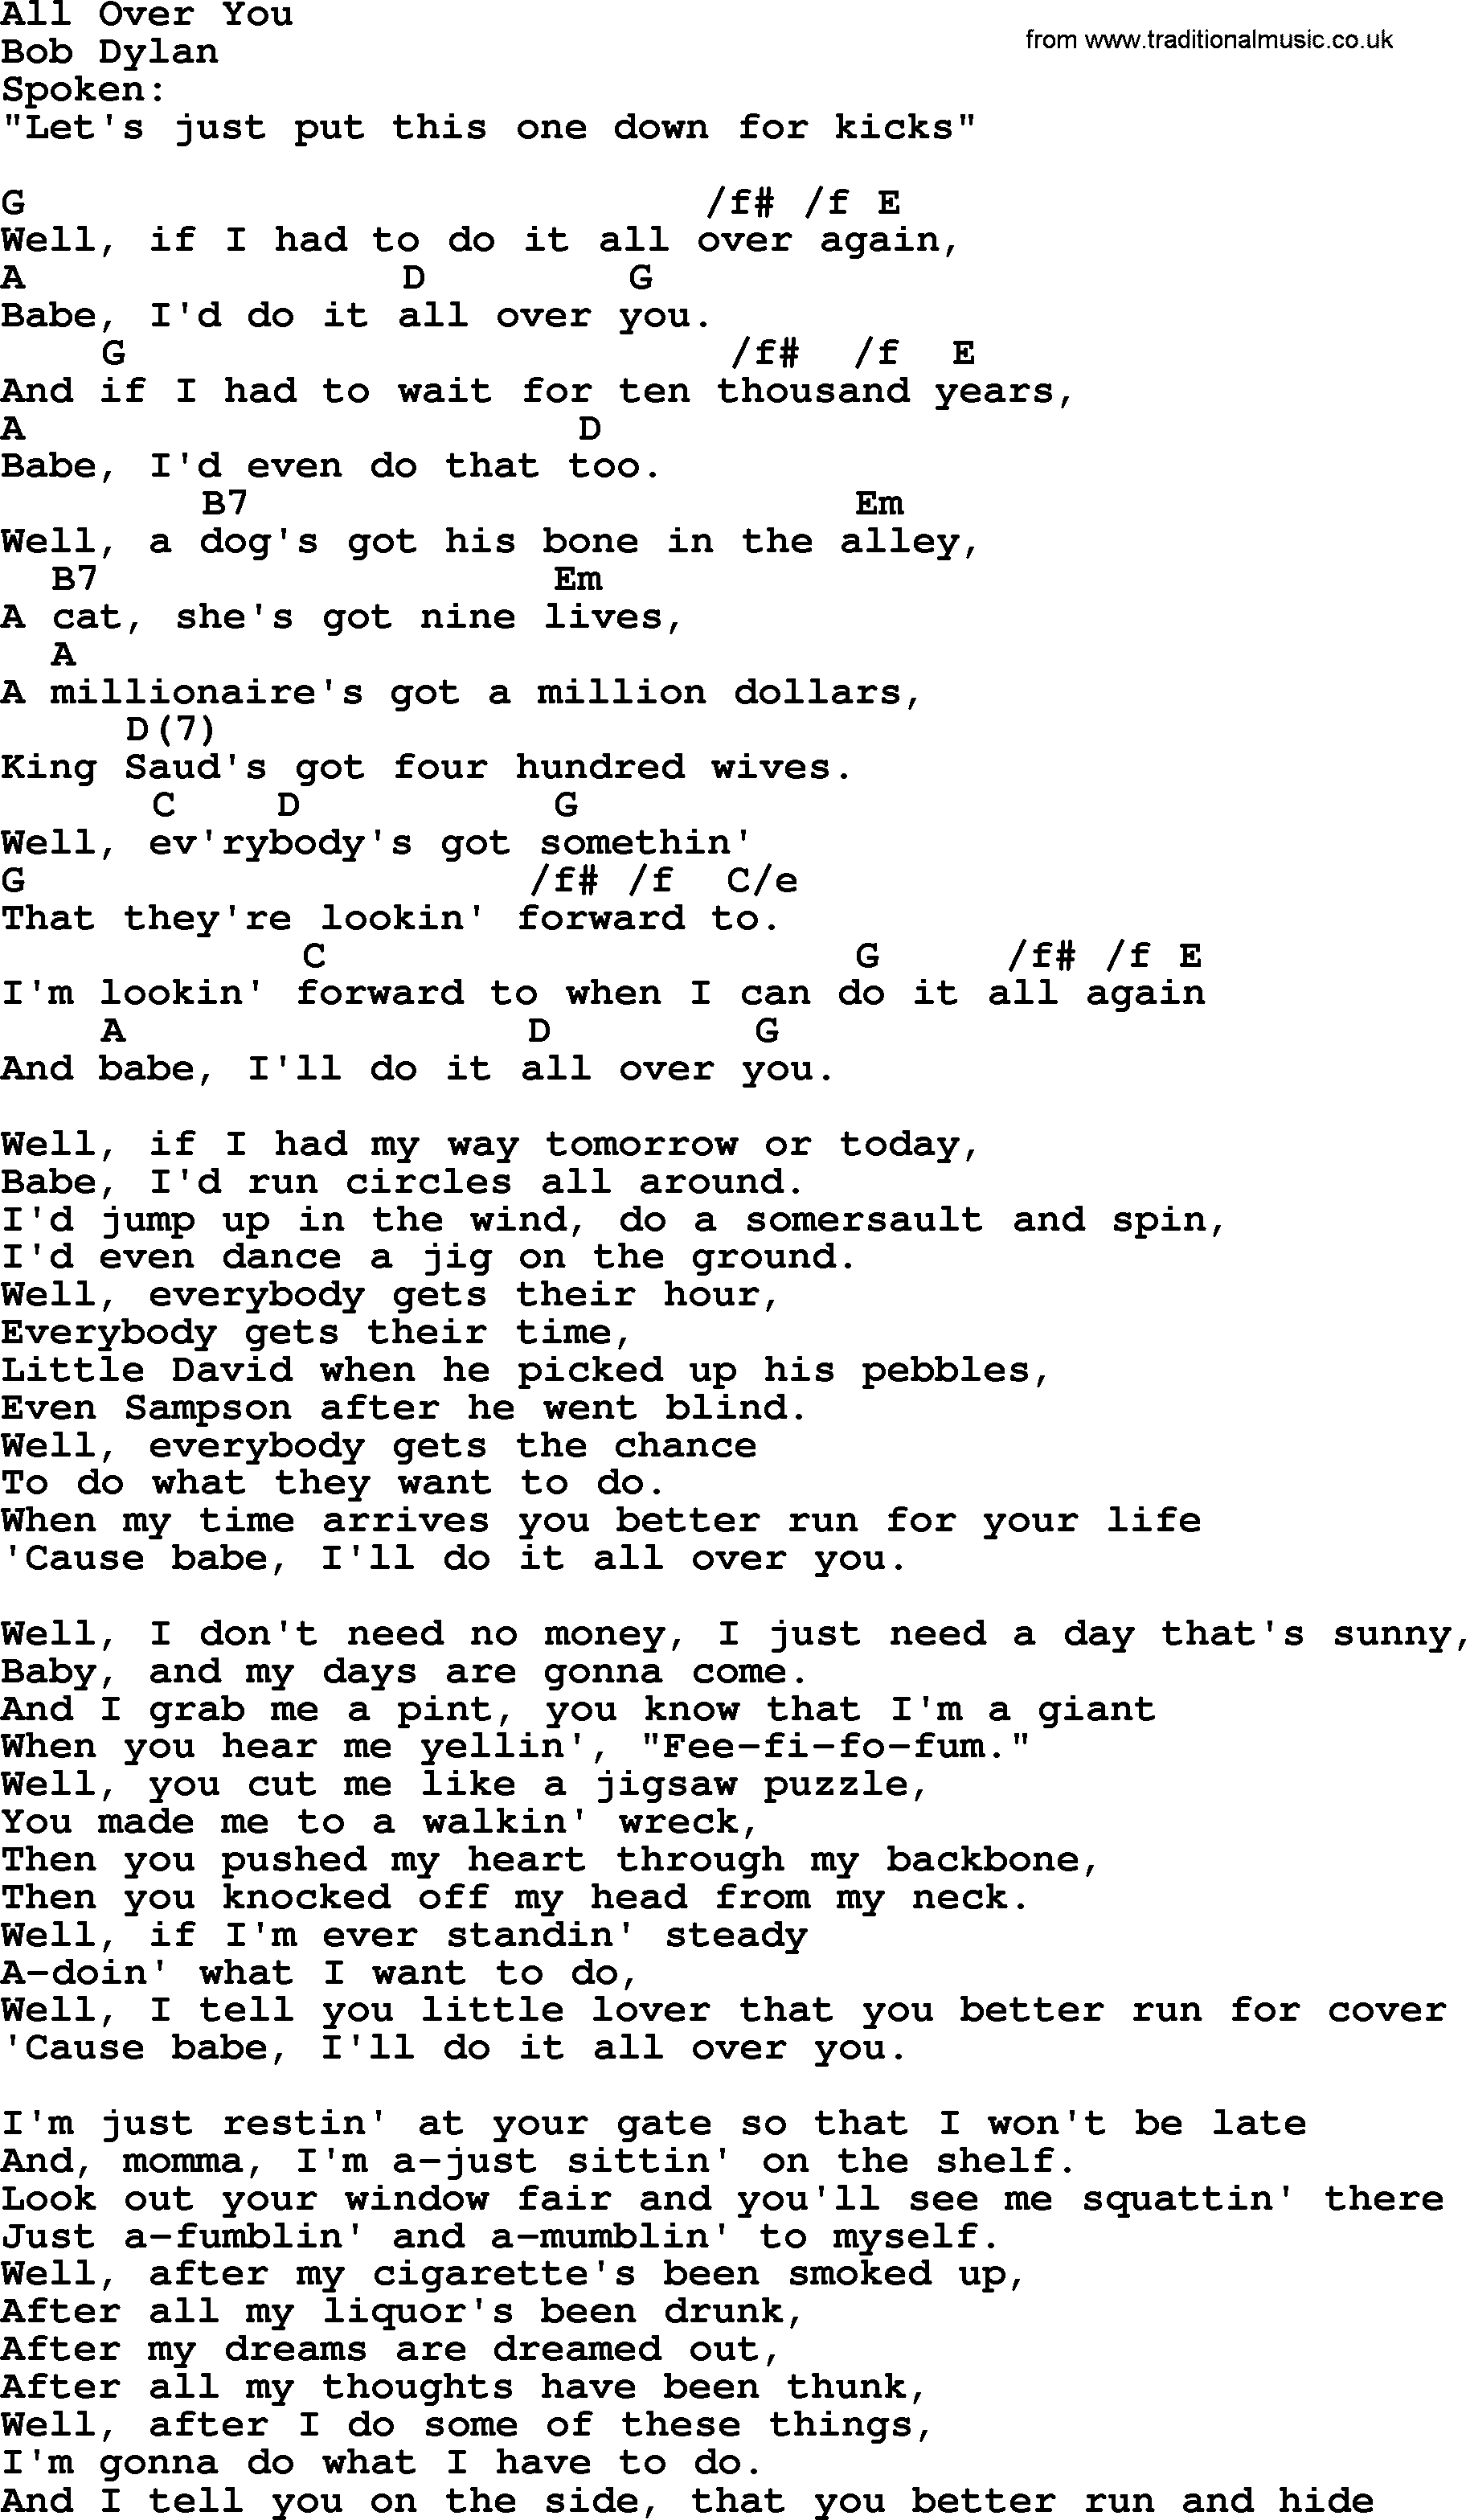 Bob Dylan song   All Over You, lyrics and chords